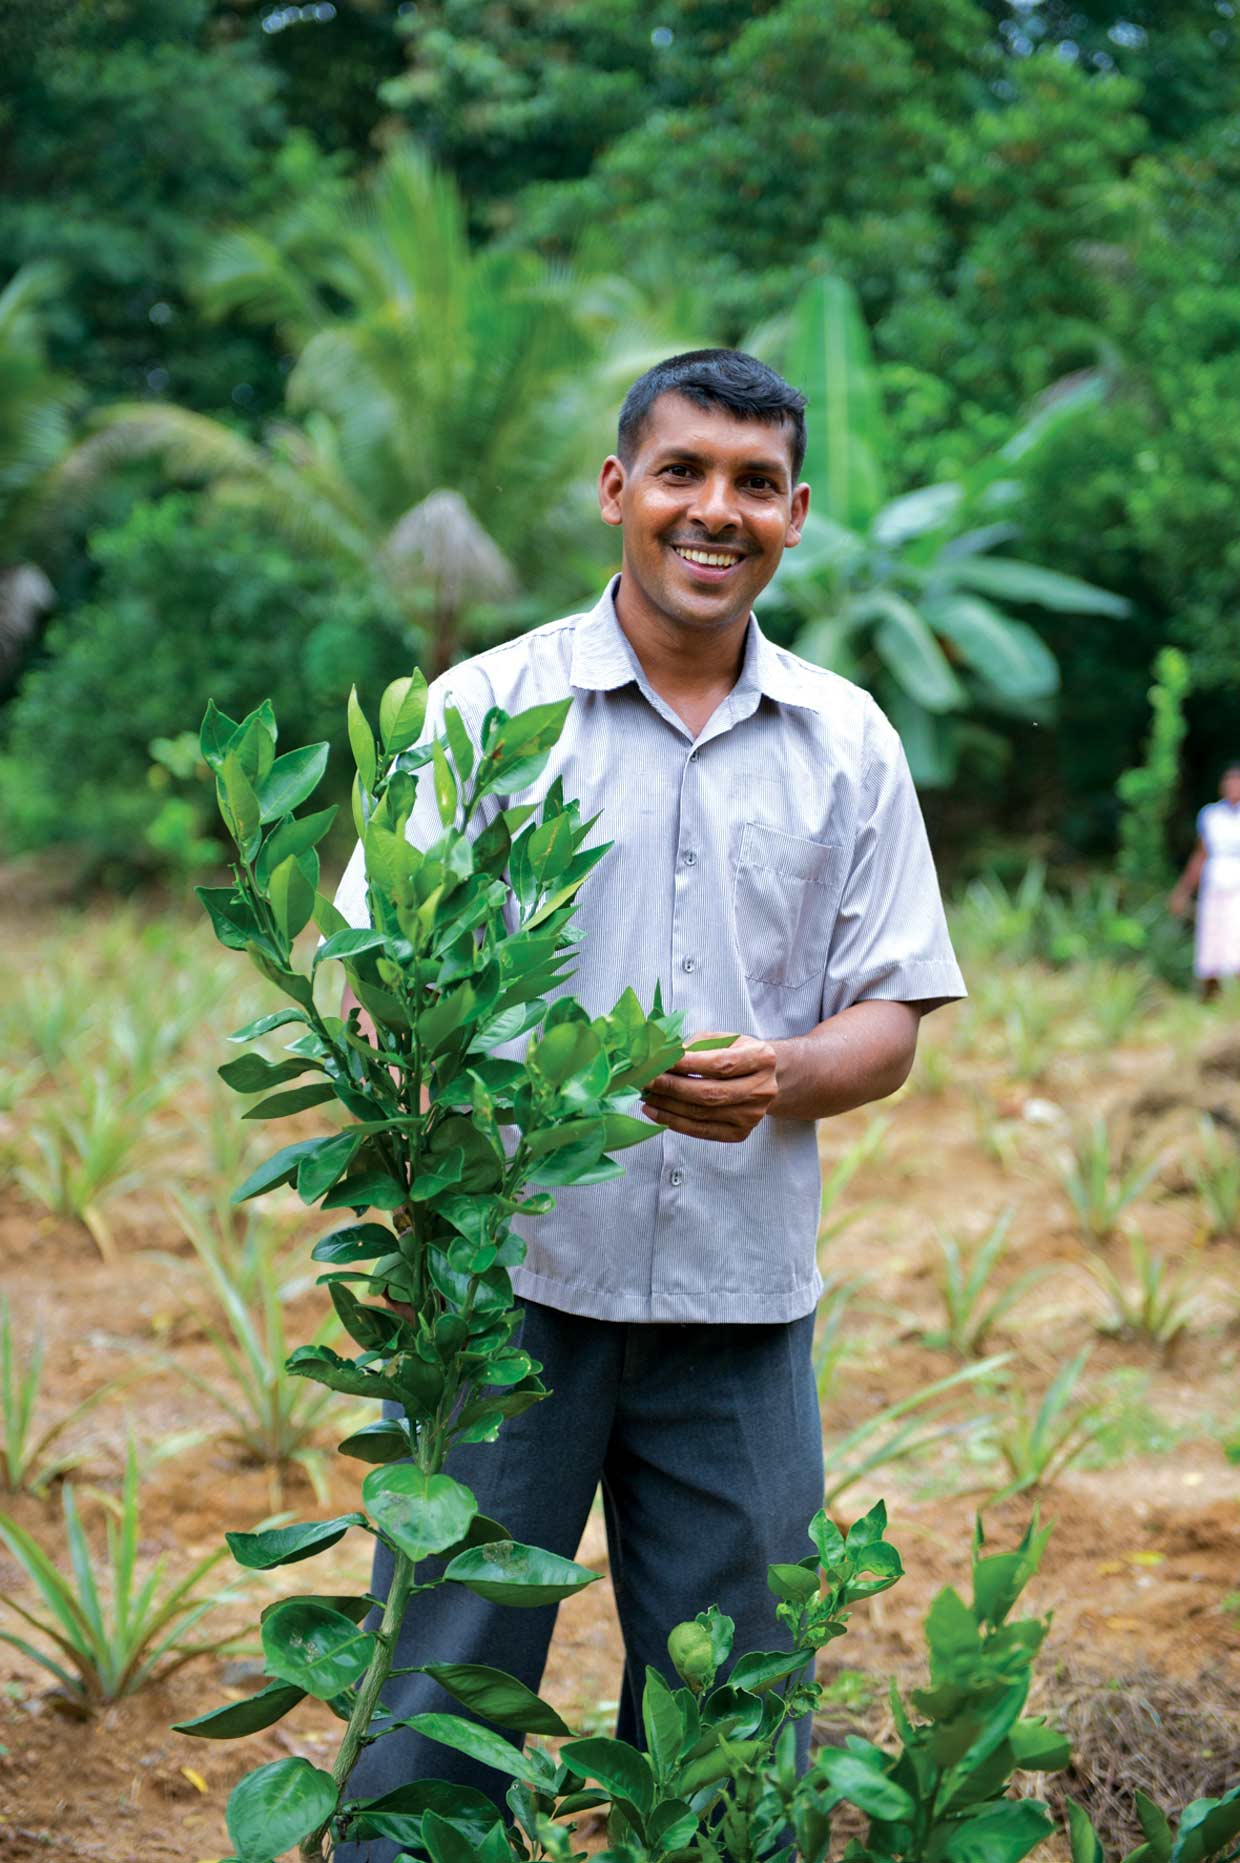 Samantha is a successful businessman and community leader in Moneragala, one of the least developed districts in Sri Lanka. He is one of the early recipients of the Prison Reform and Reintegrate Programme of the MJF Charitable Foundation established in 2007.